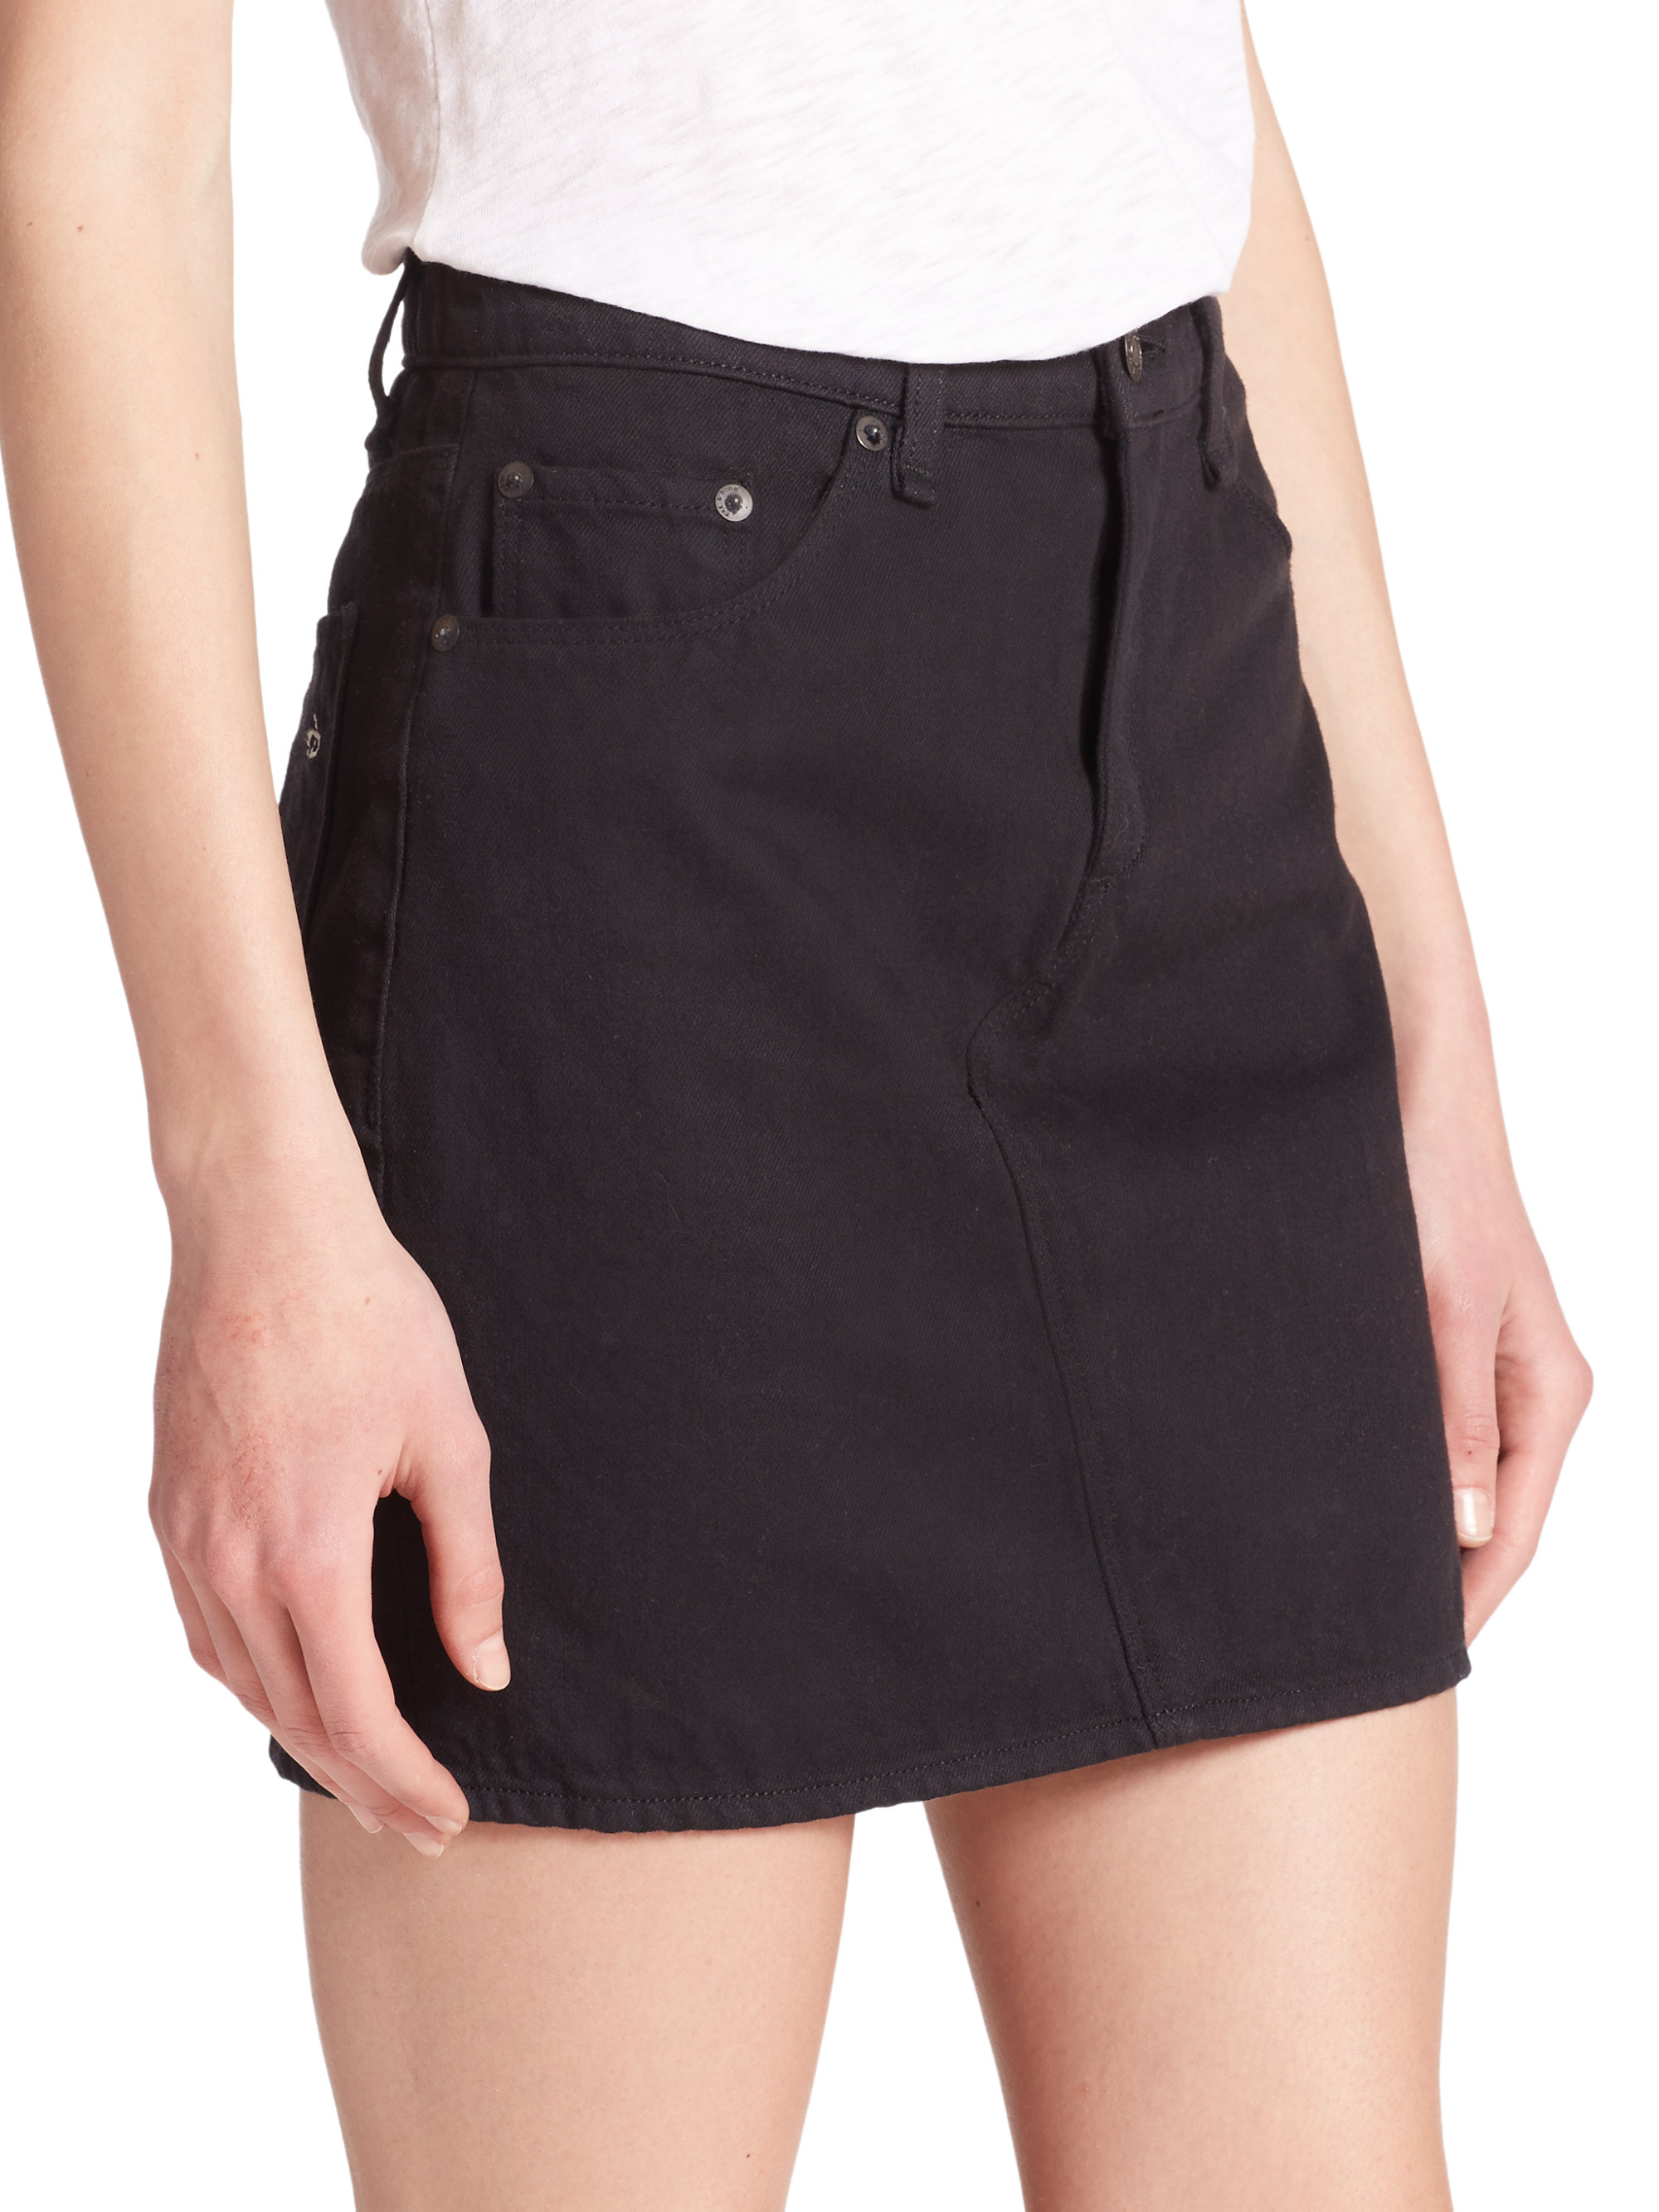 Rag & bone The Denim Mini Skirt in Black | Lyst